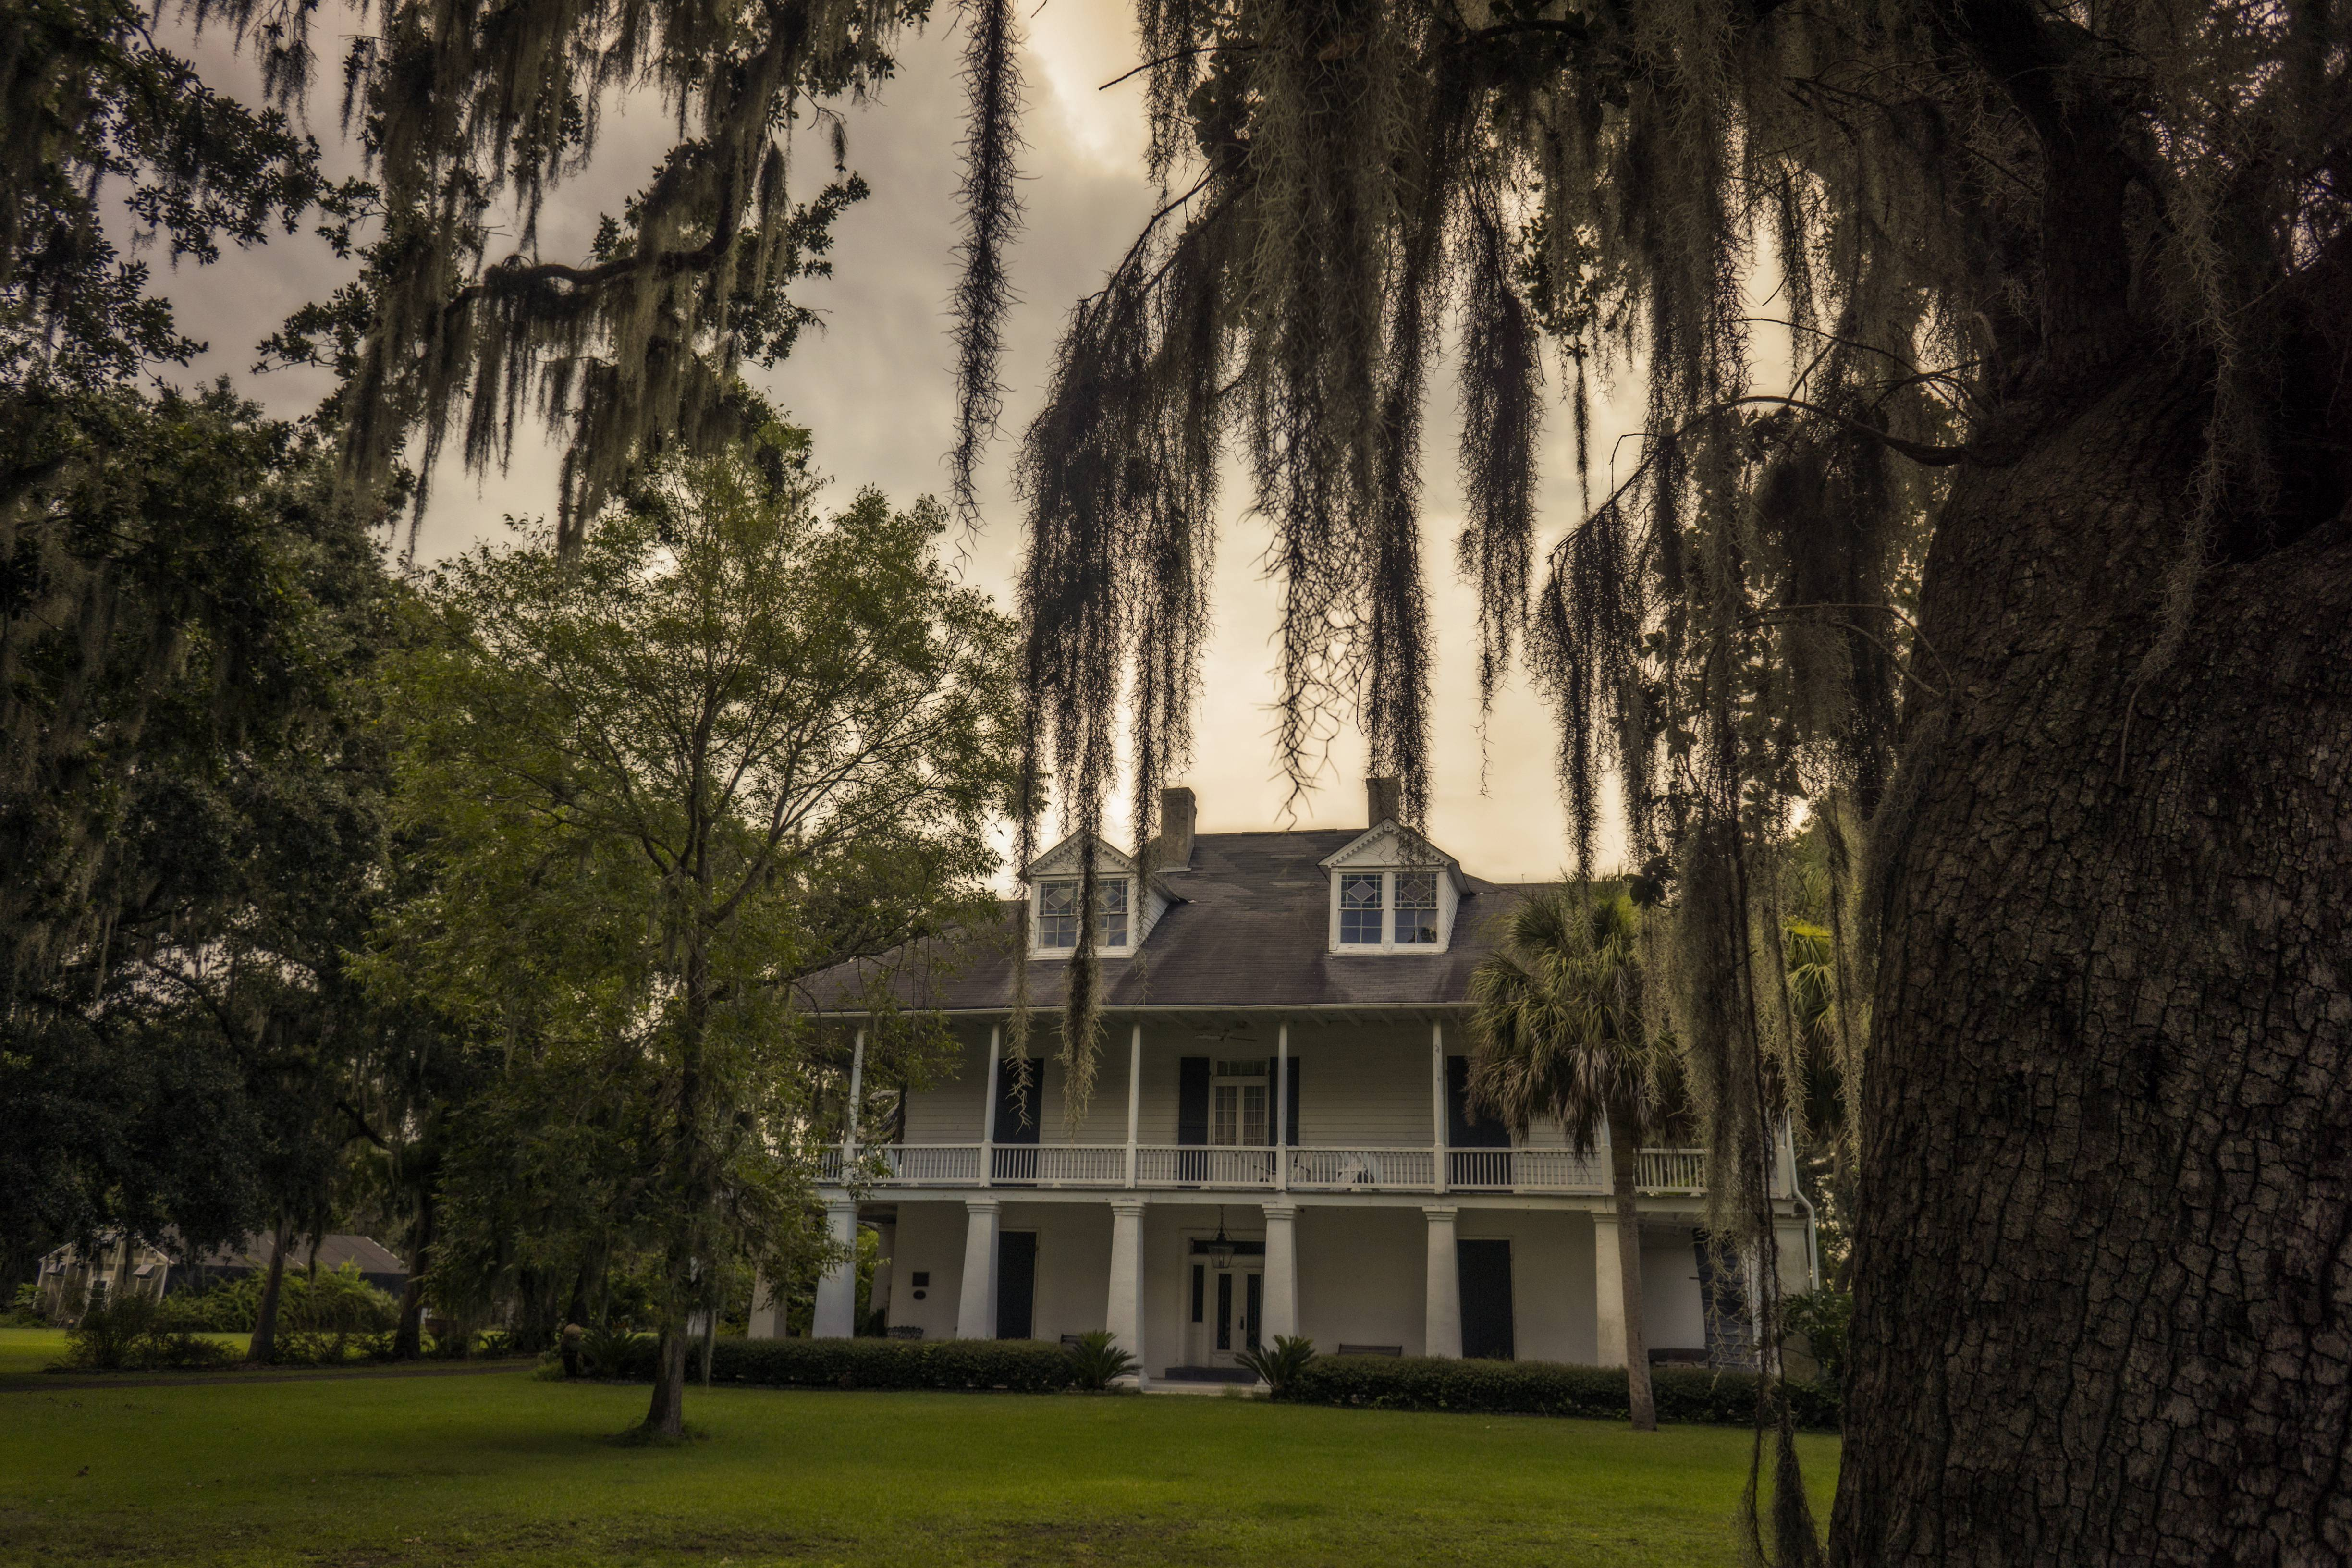 A complete view of The Kenilworth Plantation Mansion.